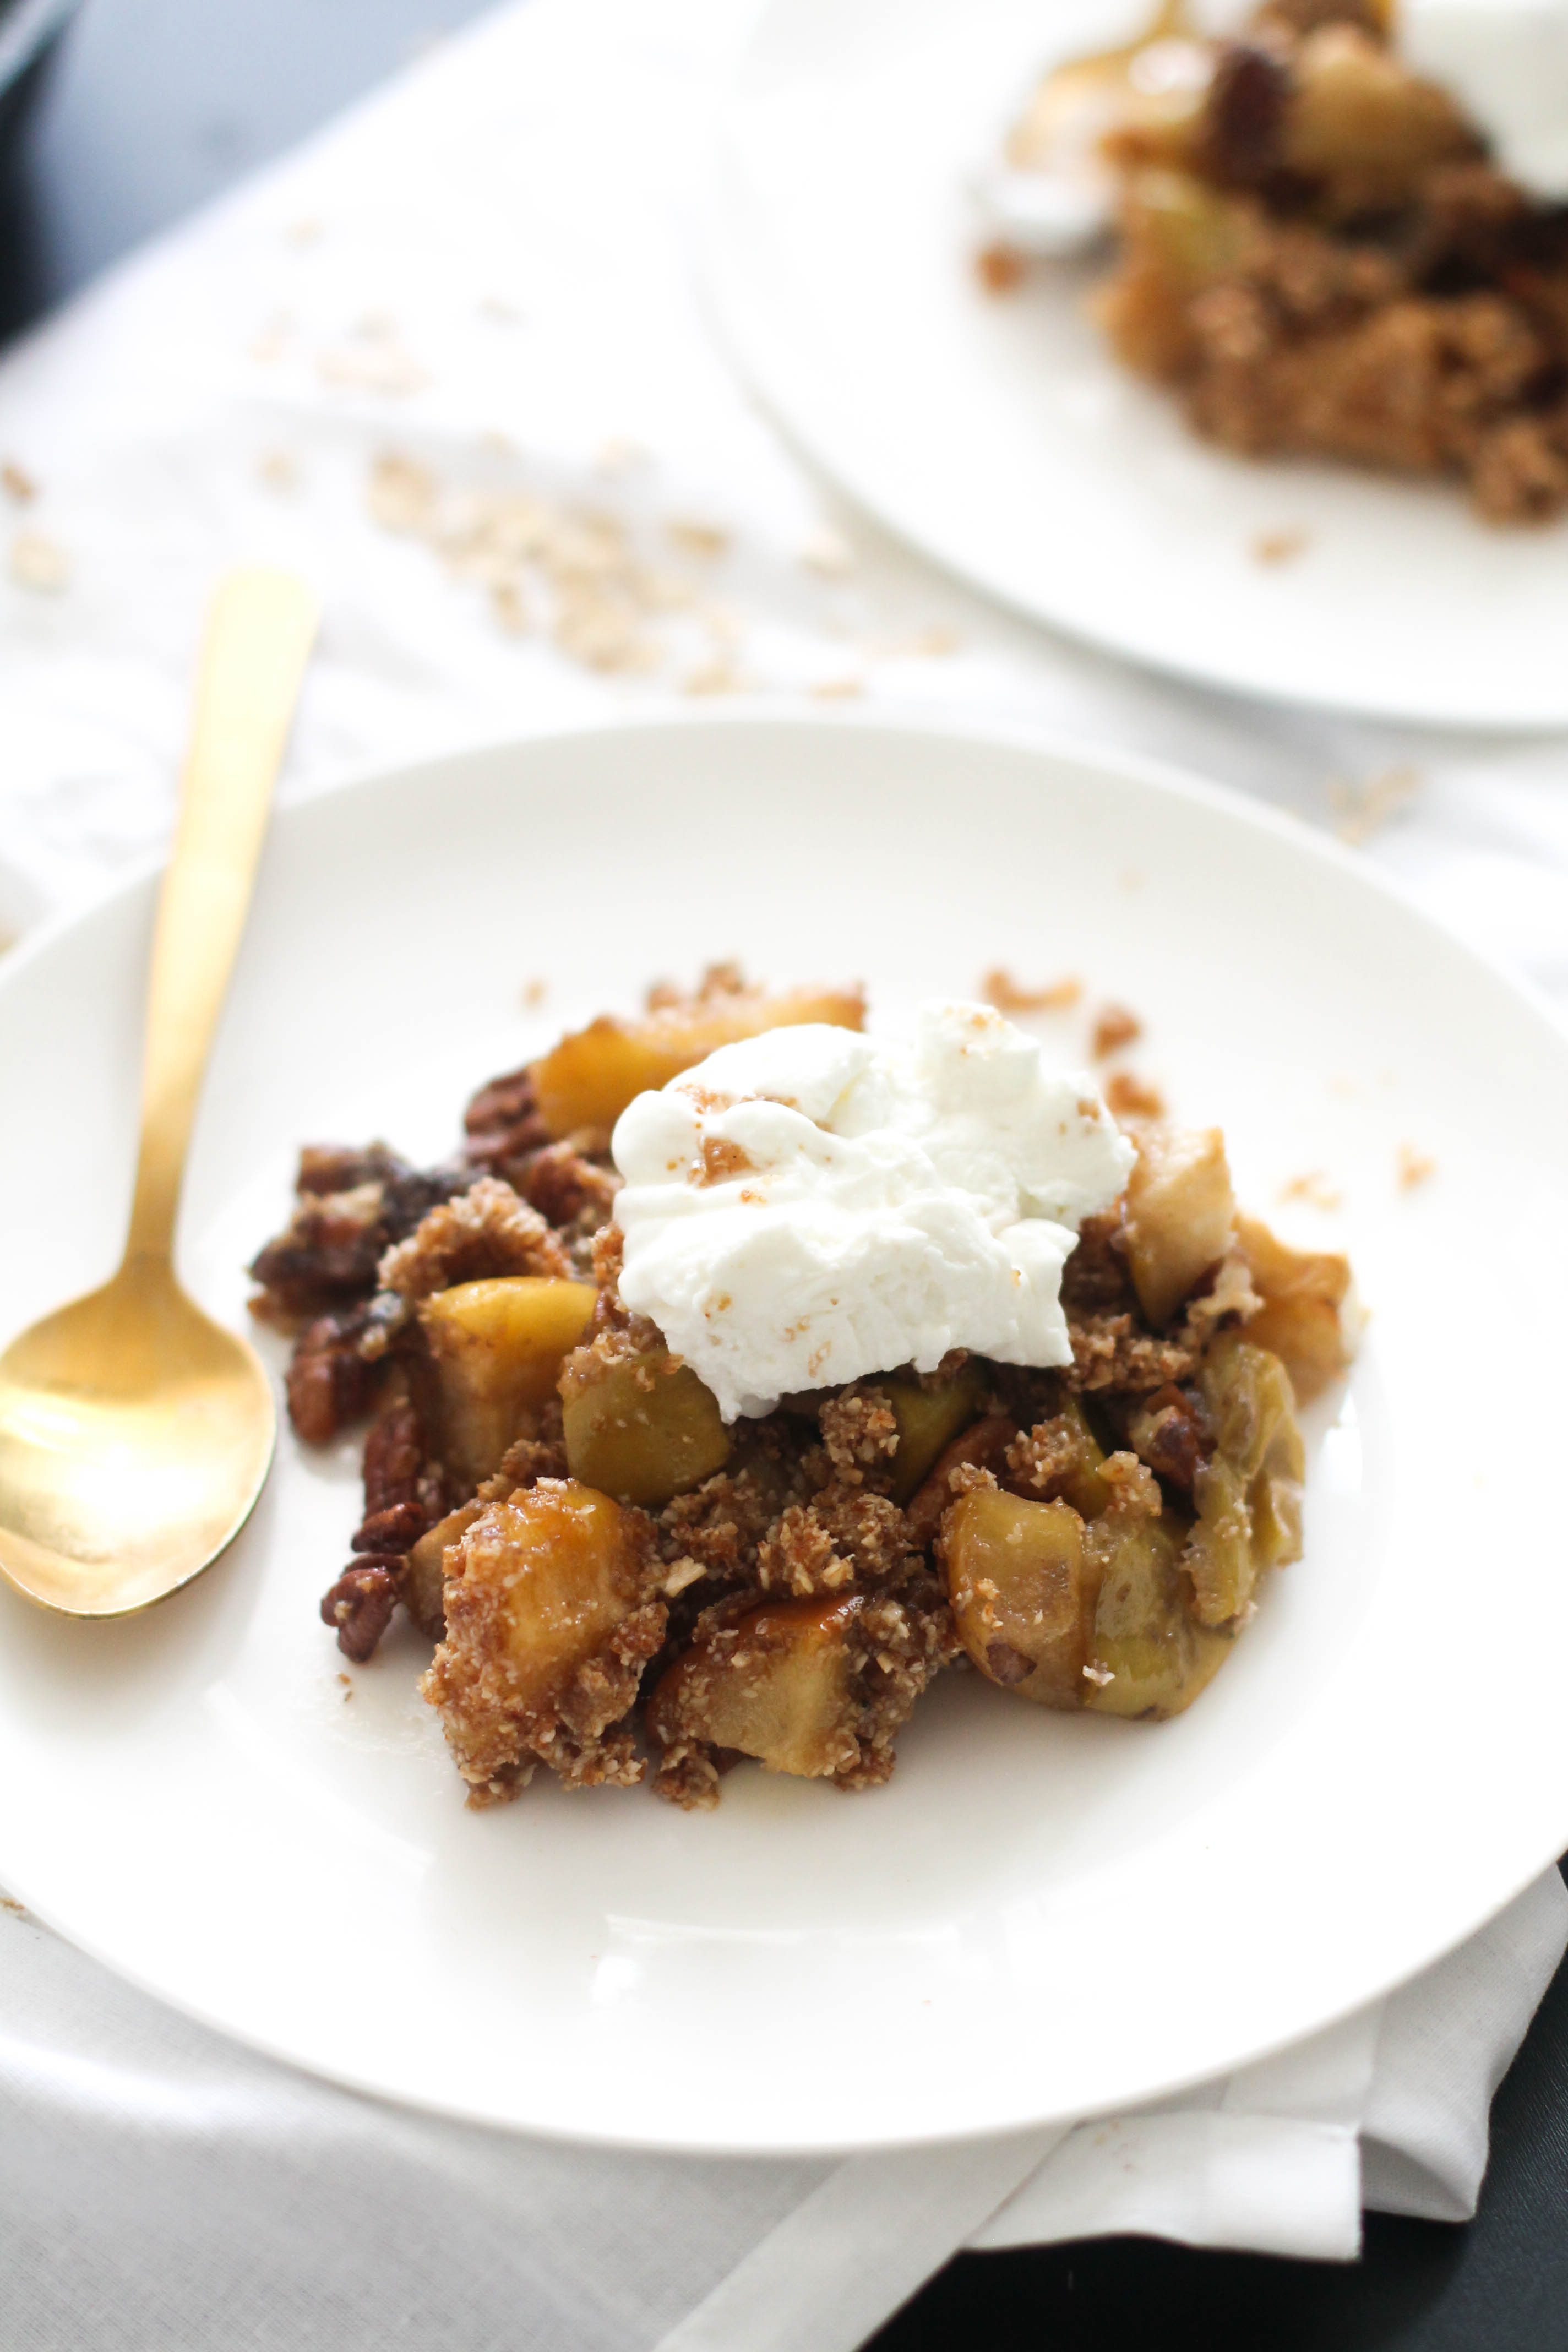 This apple crisp is absolutely perfect! It's vegan, gluten free, refined sugar free, and ready in an under an hour. Made with minimal ingredients and packed with flavor, this is the perfect dessert.